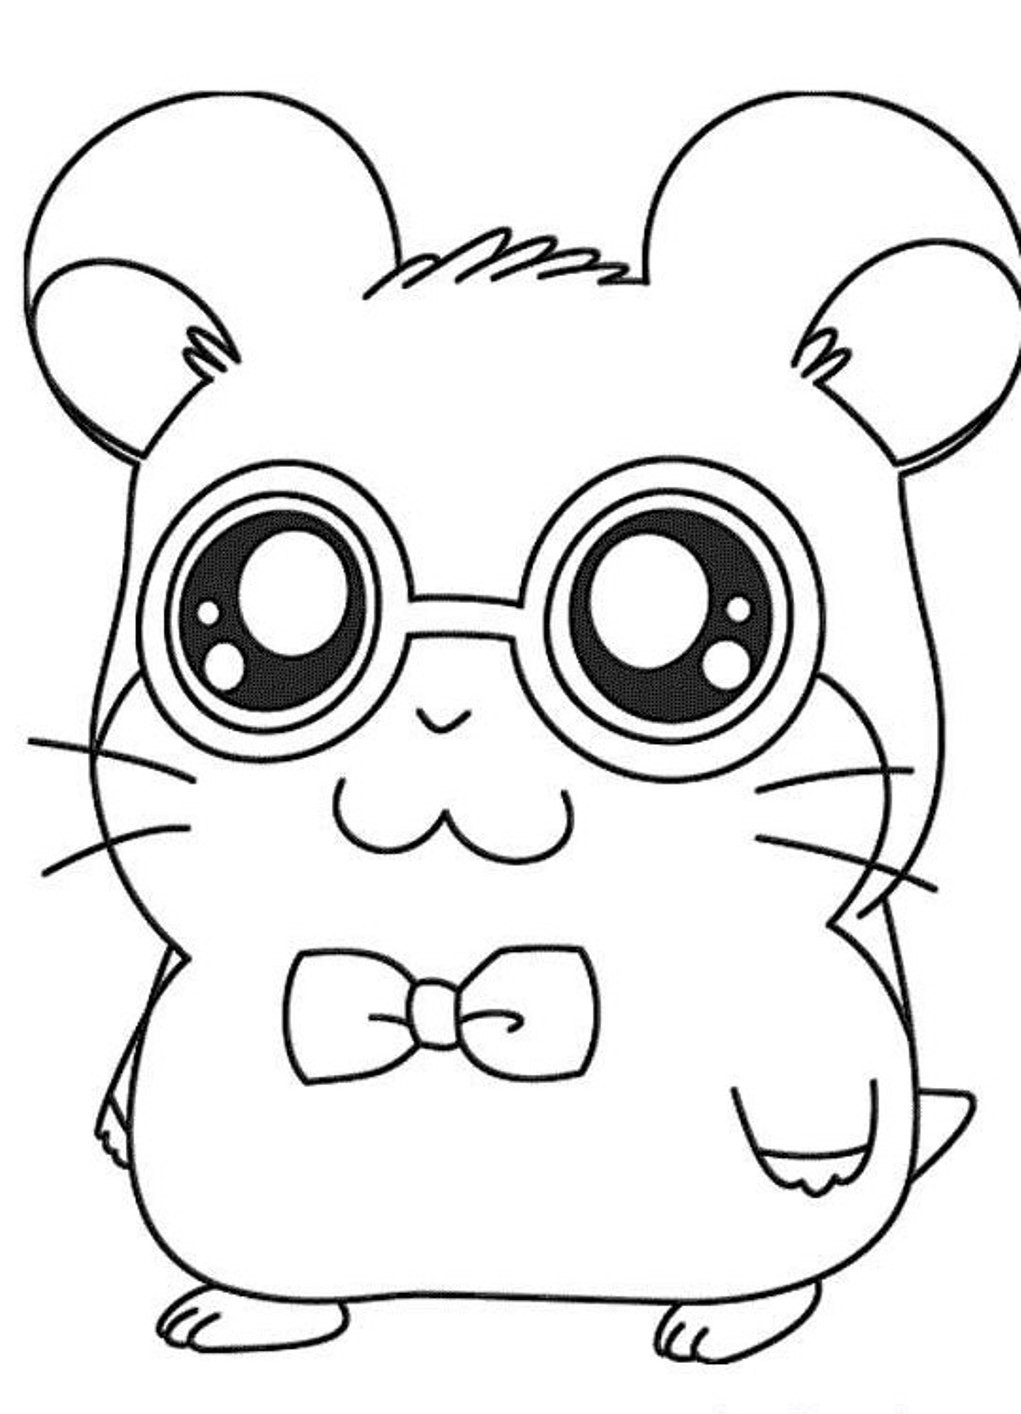 Cute Coloring Pages  Cute Baby Animal Coloring Pages 8433 Bestofcoloring